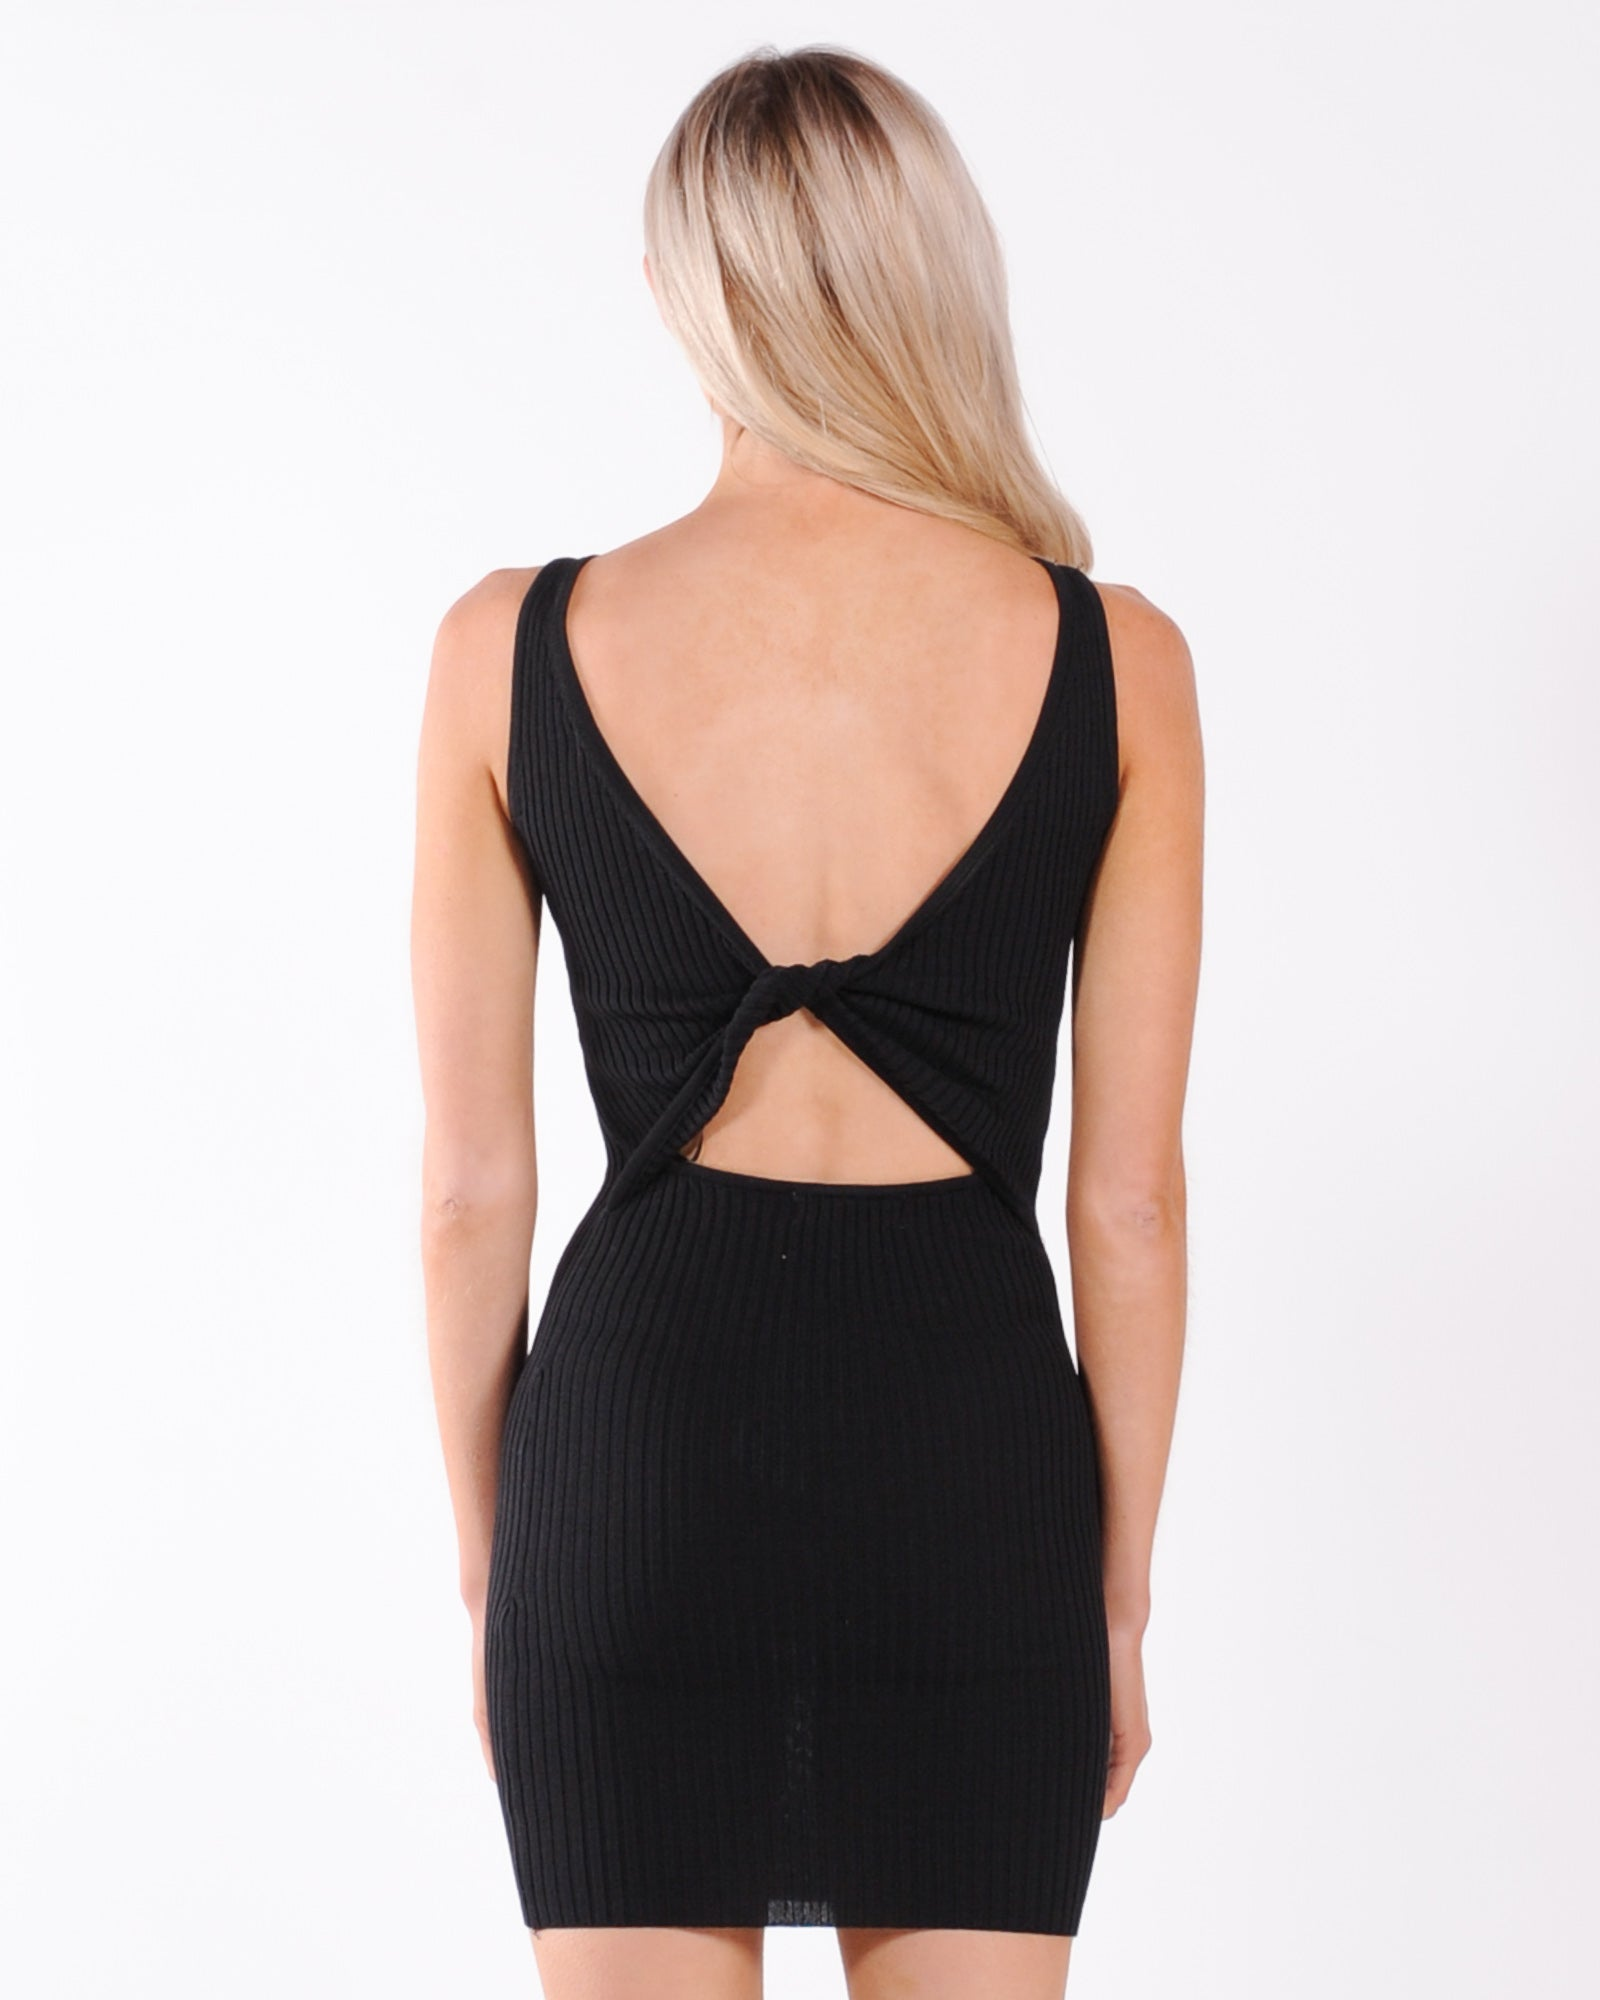 Power Move Knit Dress - Black